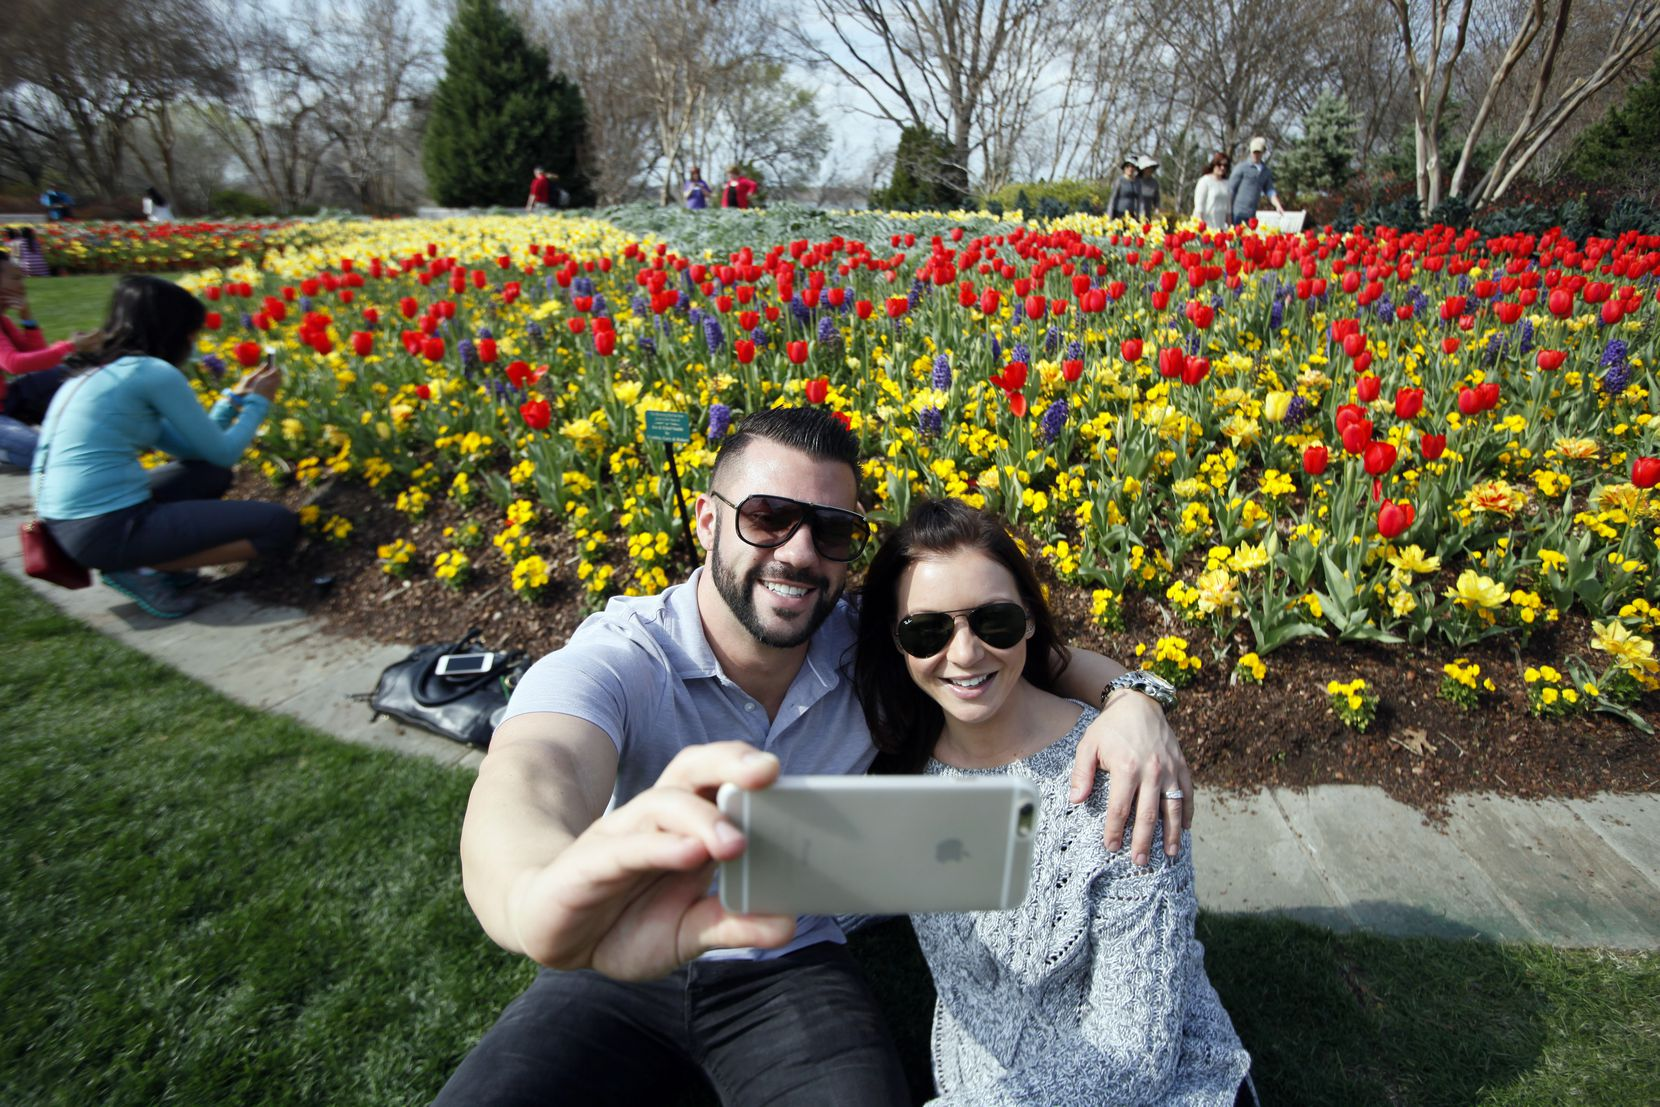 Eric Andrews and Shannon Andrews, of Lewisville, smile for a photo with a bed of tulips during the Dallas Blooms Festival at the Dallas Arboretum.